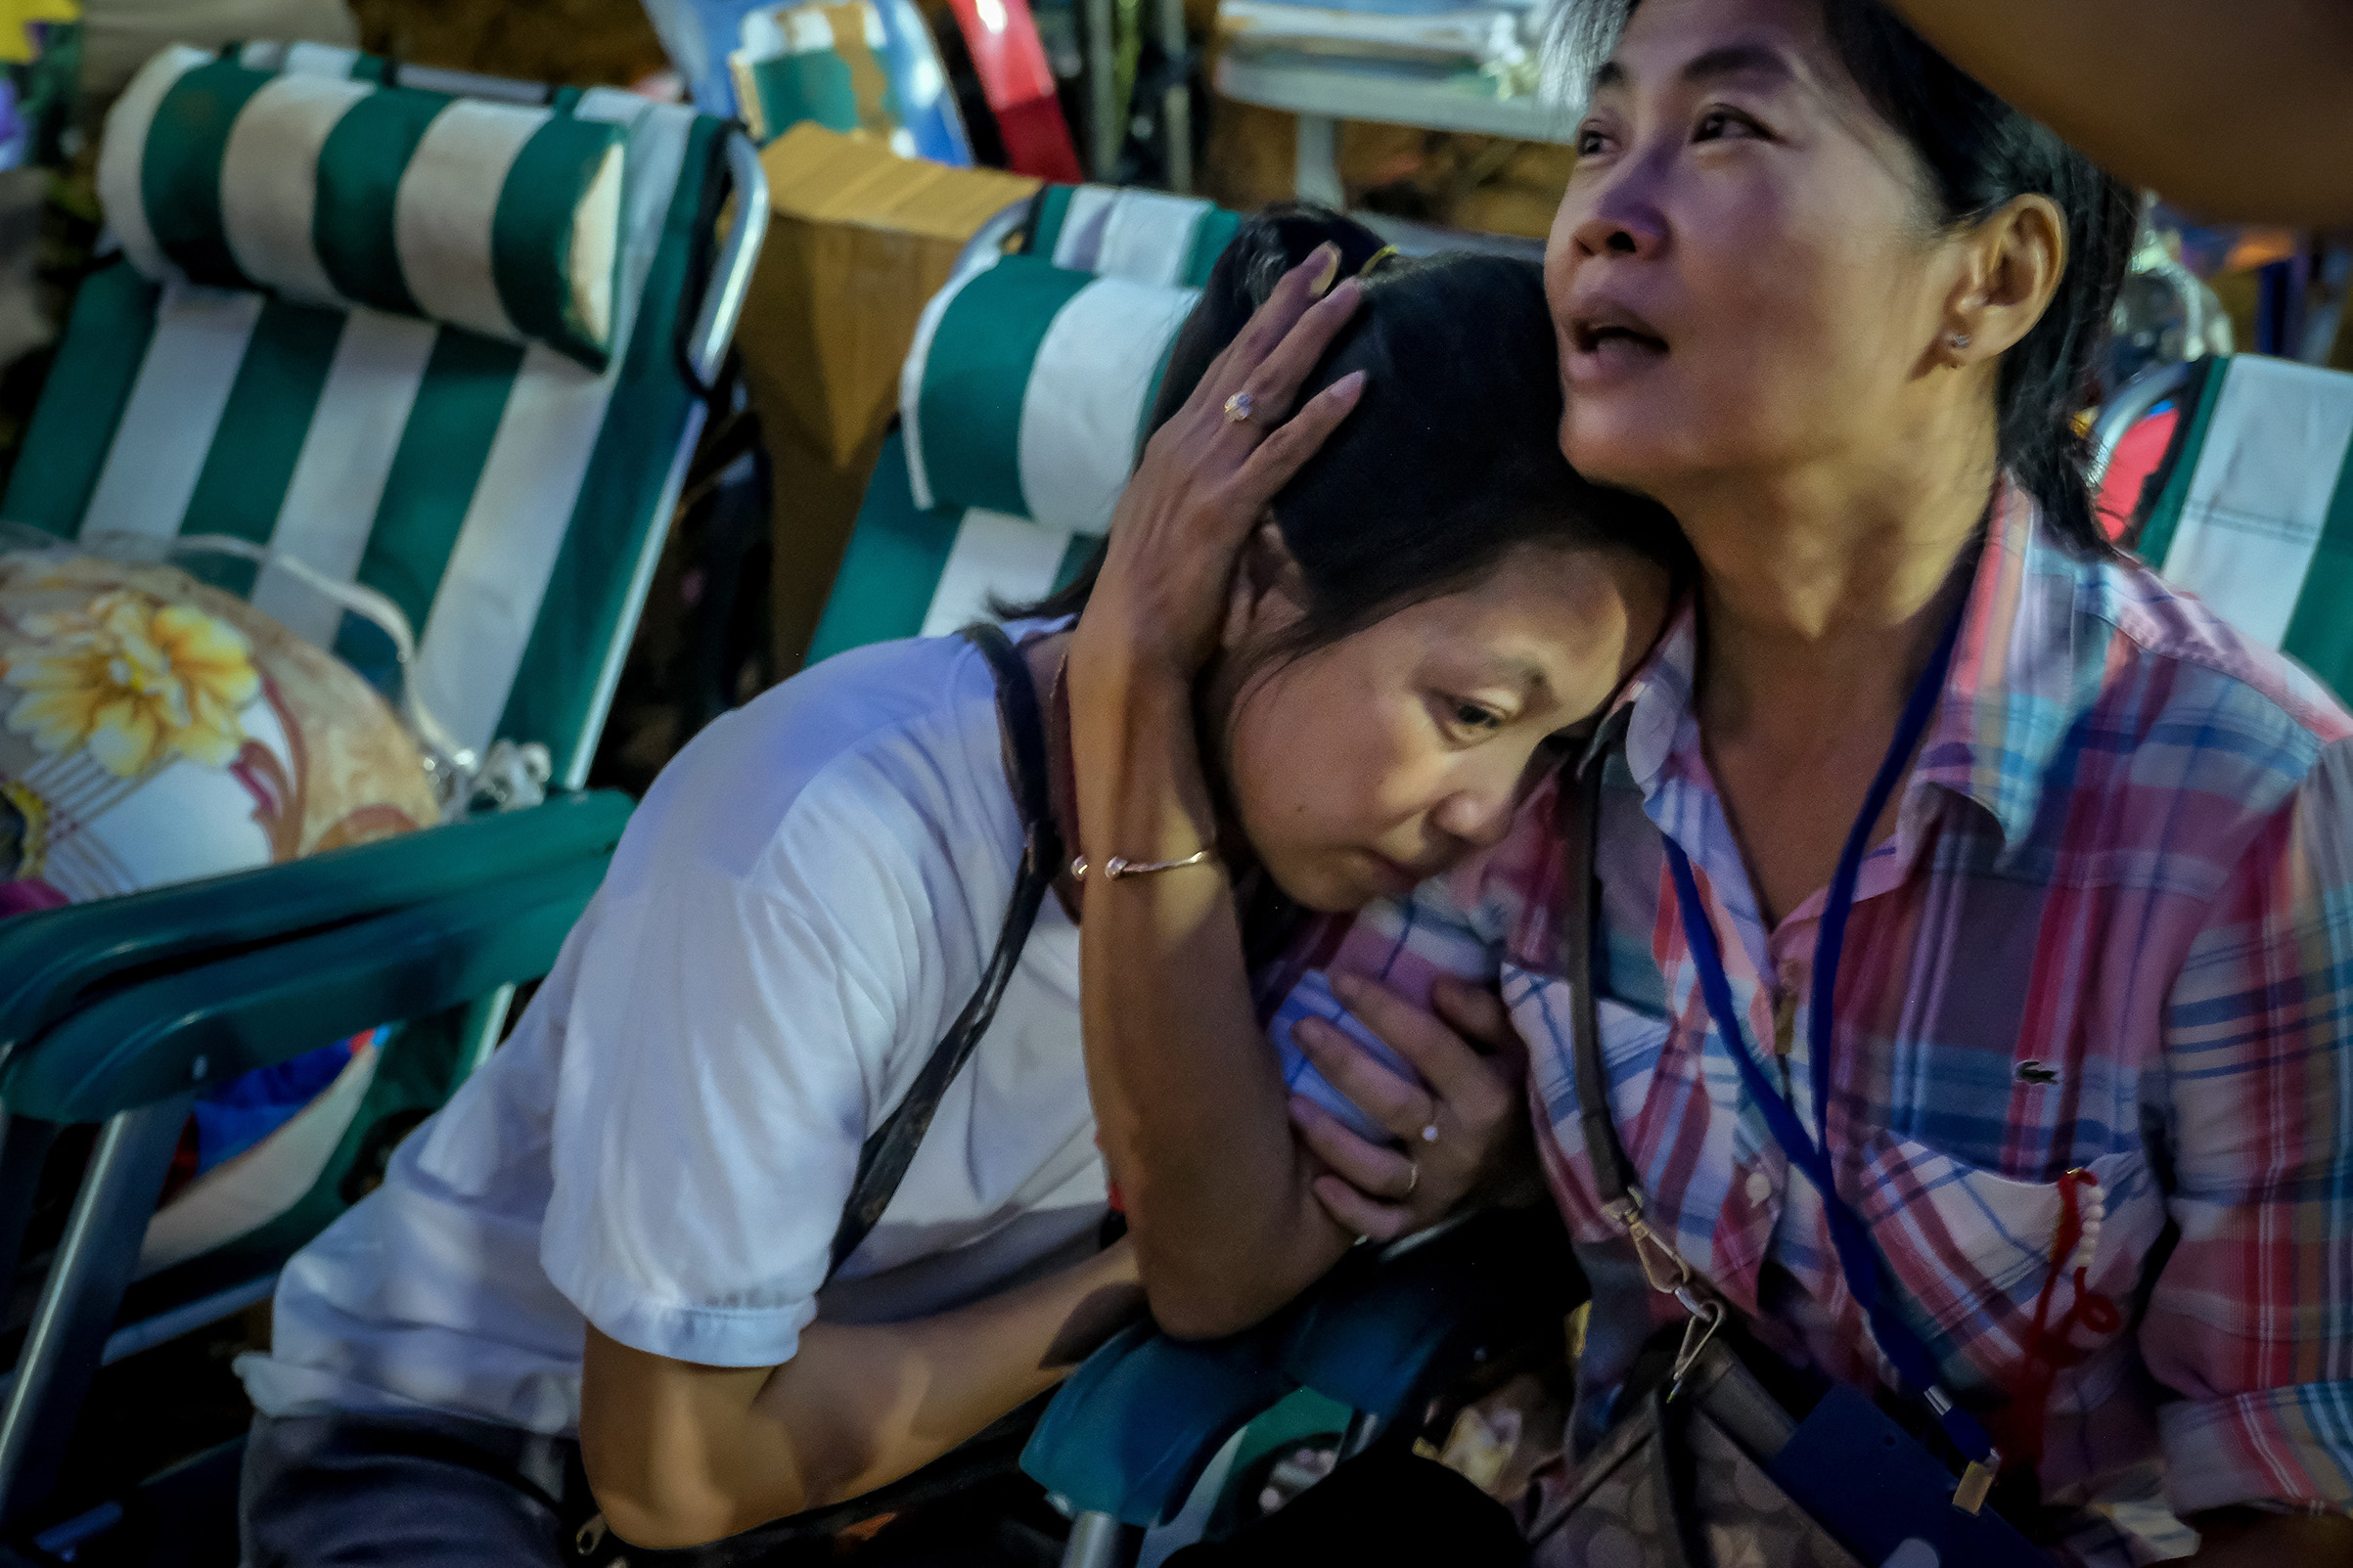 Relatives of the missing boys react after the 12 boys and their soccer coach have been found alive in the cave where they've been missing for over a week after monsoon rains blocked the main entrance on July 2, 2018 in Chiang Rai, Thailand.